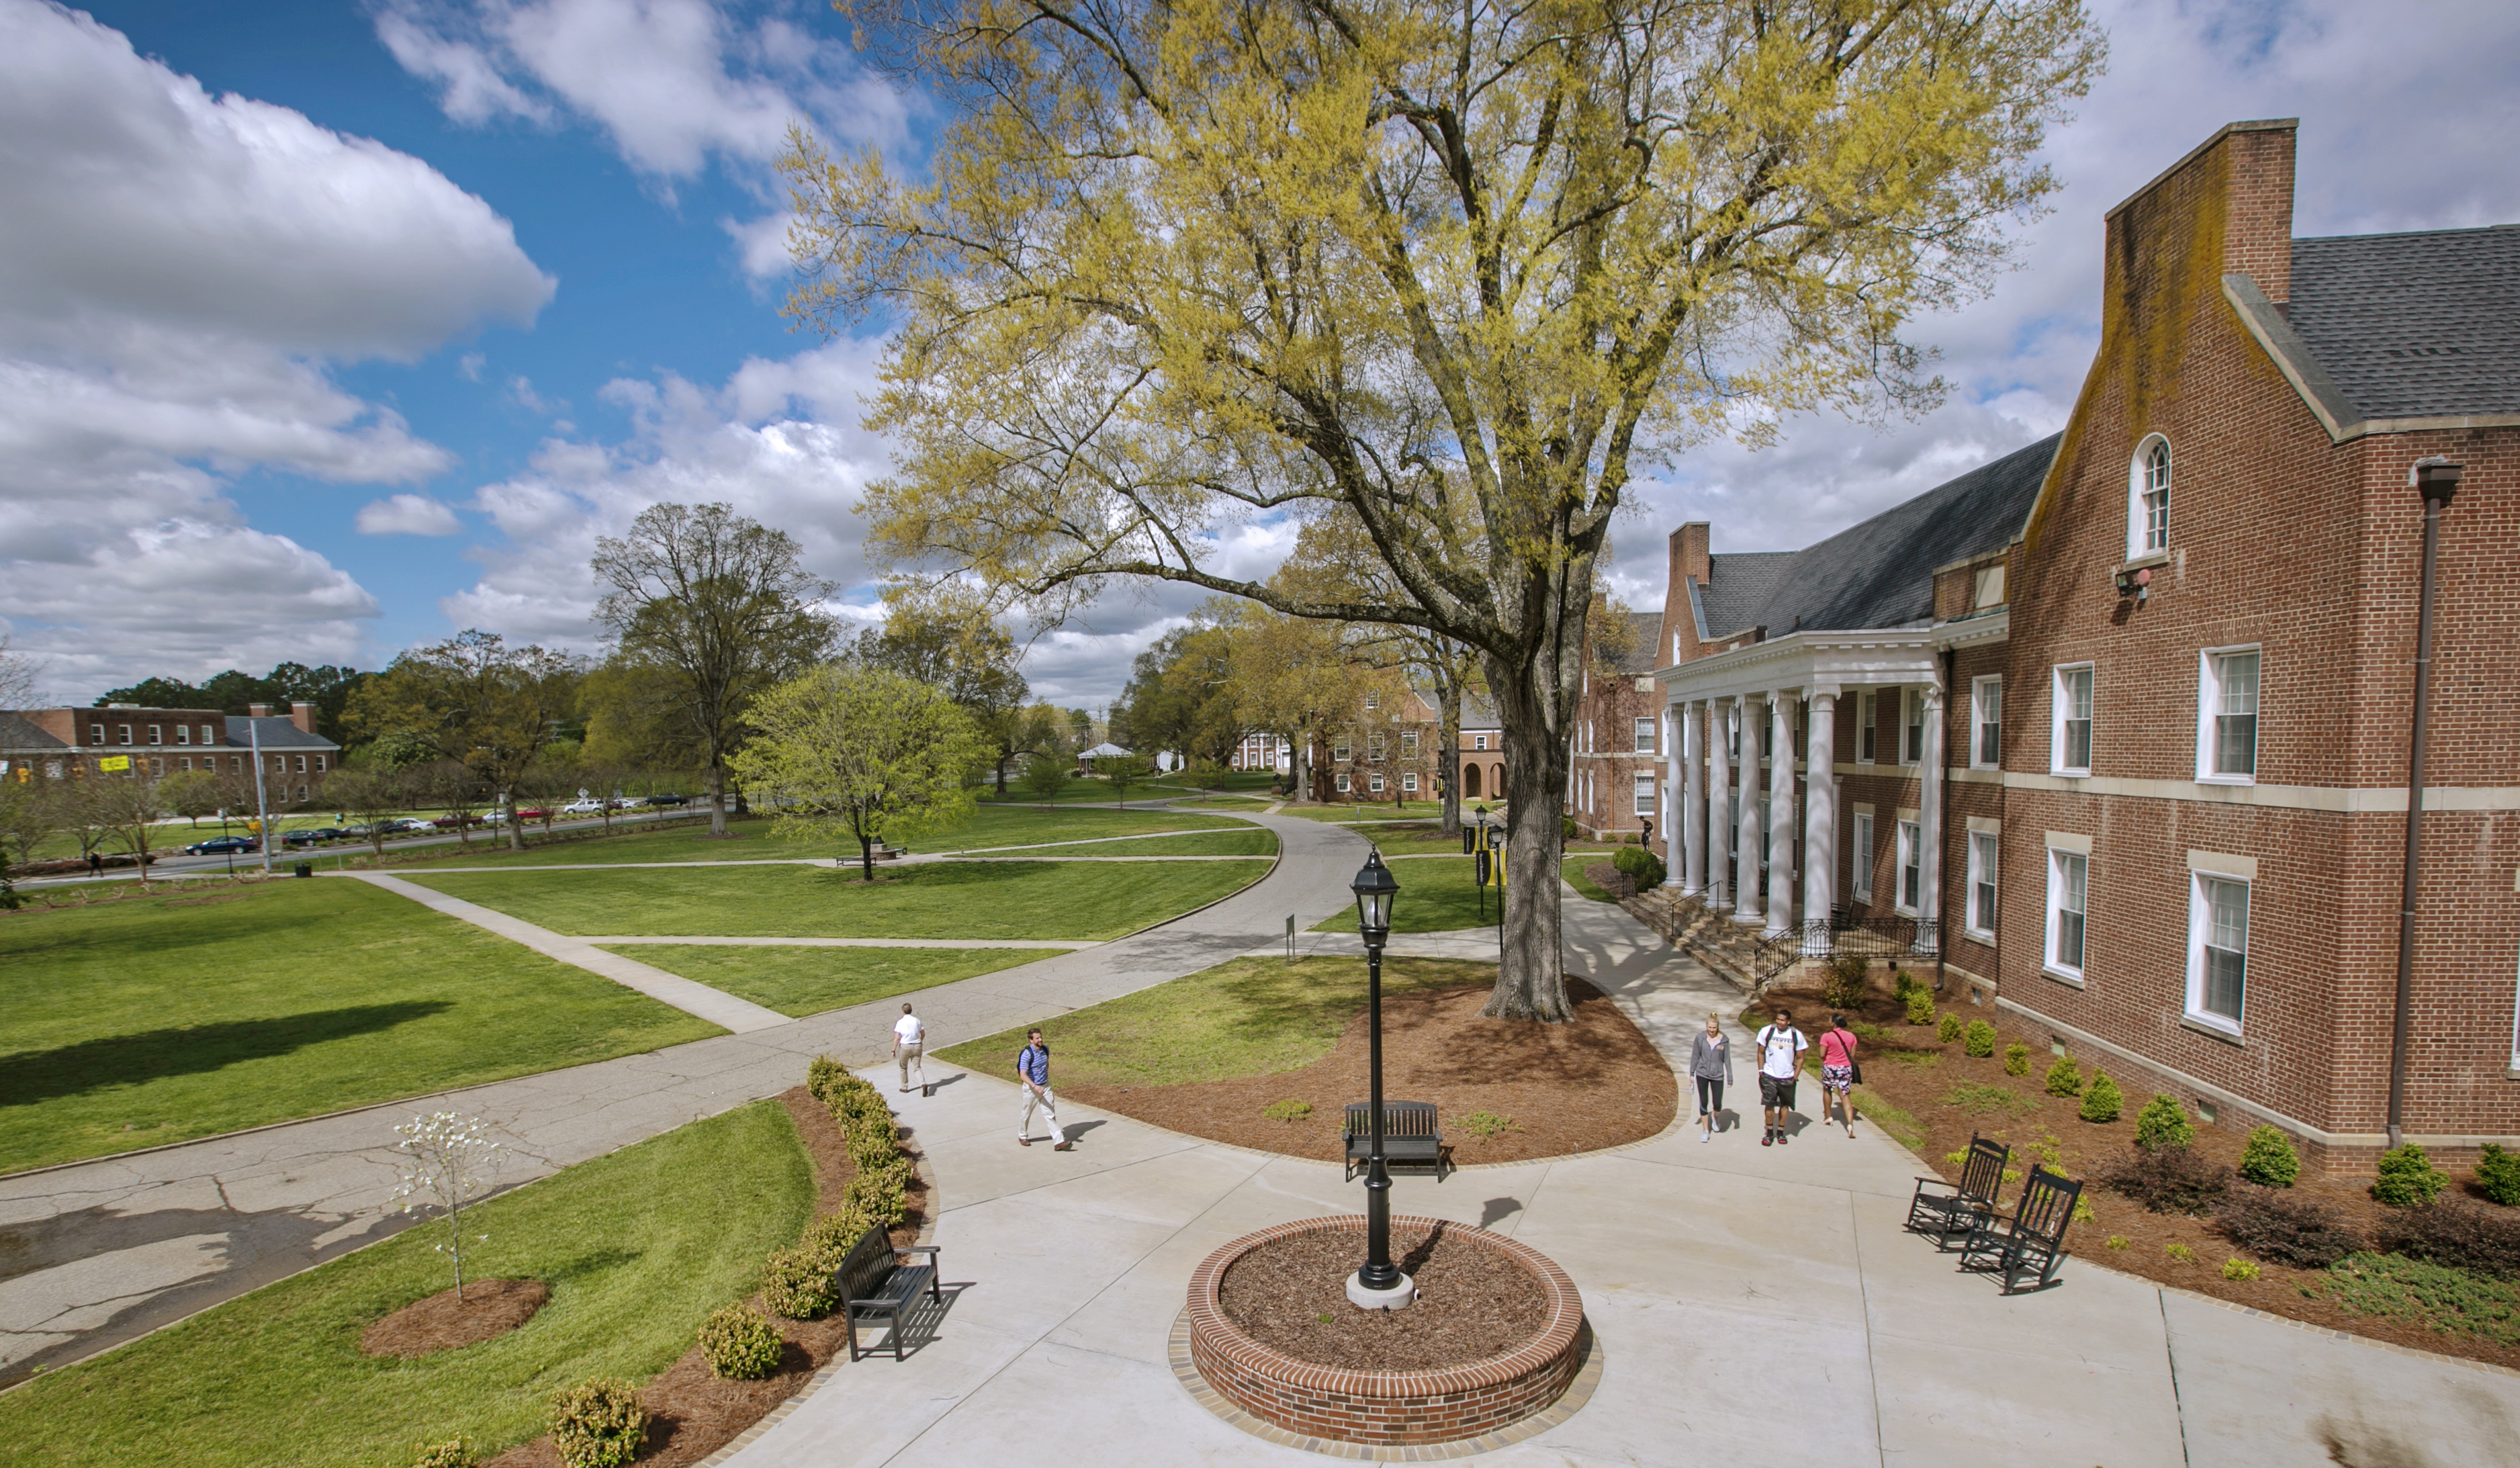 Fall 2020 Academic Calendar Updates | Pfeiffer Pertaining To What Is The University Of Rhode Island Semester Calendar For 2020